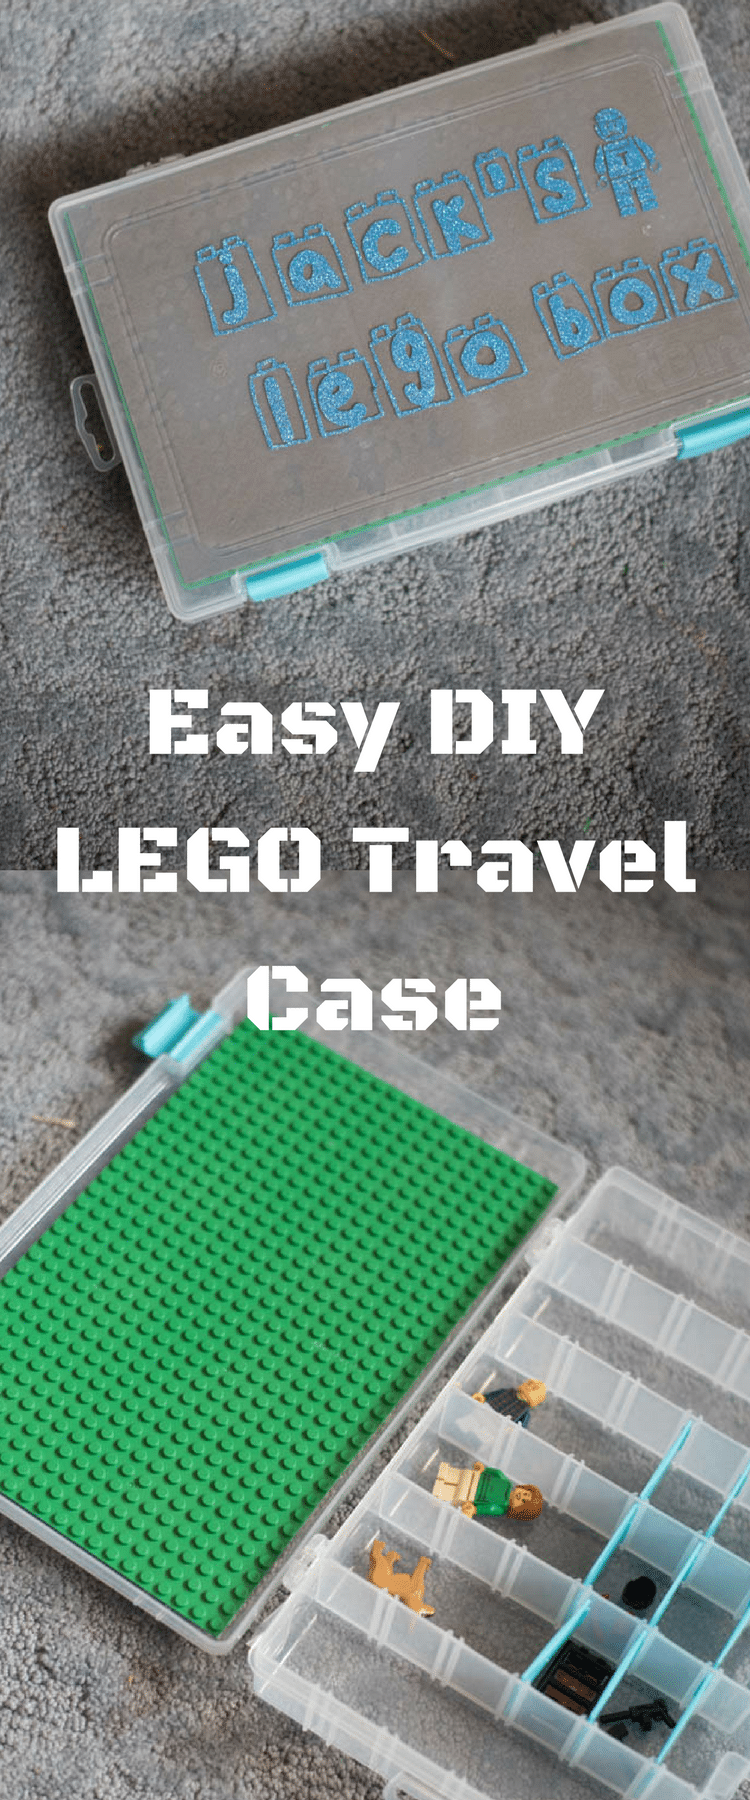 LEGO Storage / LEGO Travel Tray / LEGO Craft / DIY Travel Case / LEGO, LEGO, LEGO / LEGO Ideas